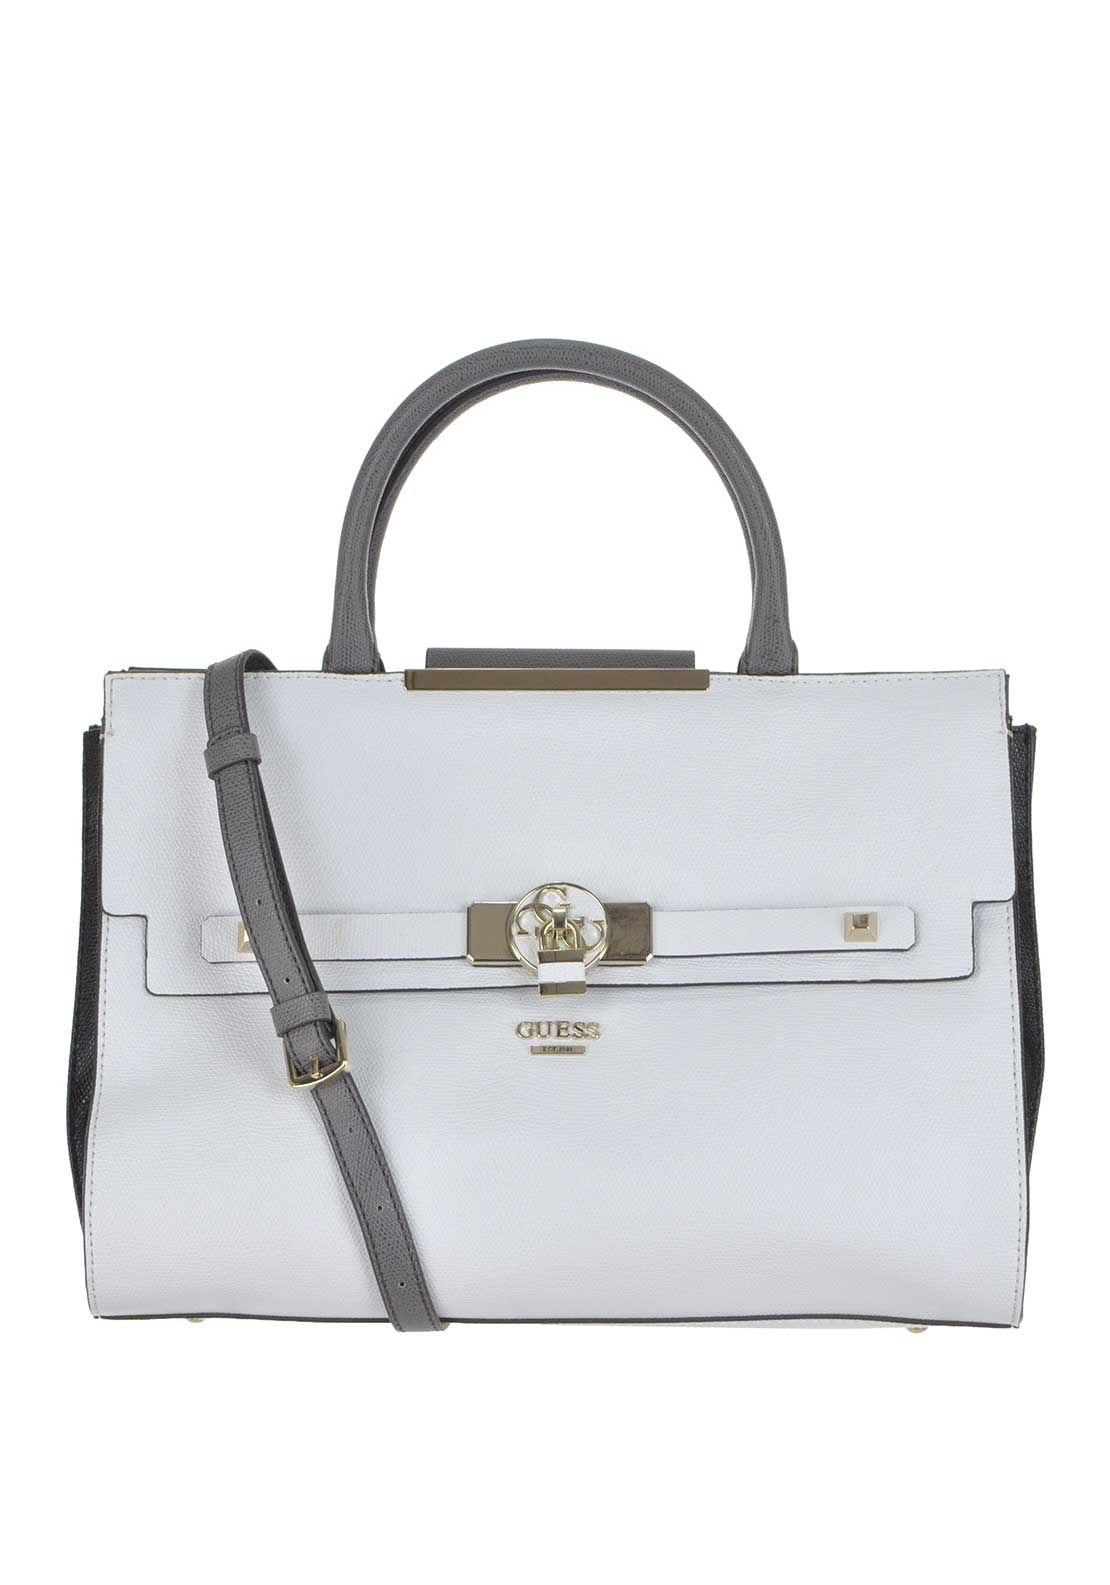 Guess Womens Faux Leather Cynthia Tote Bag, White